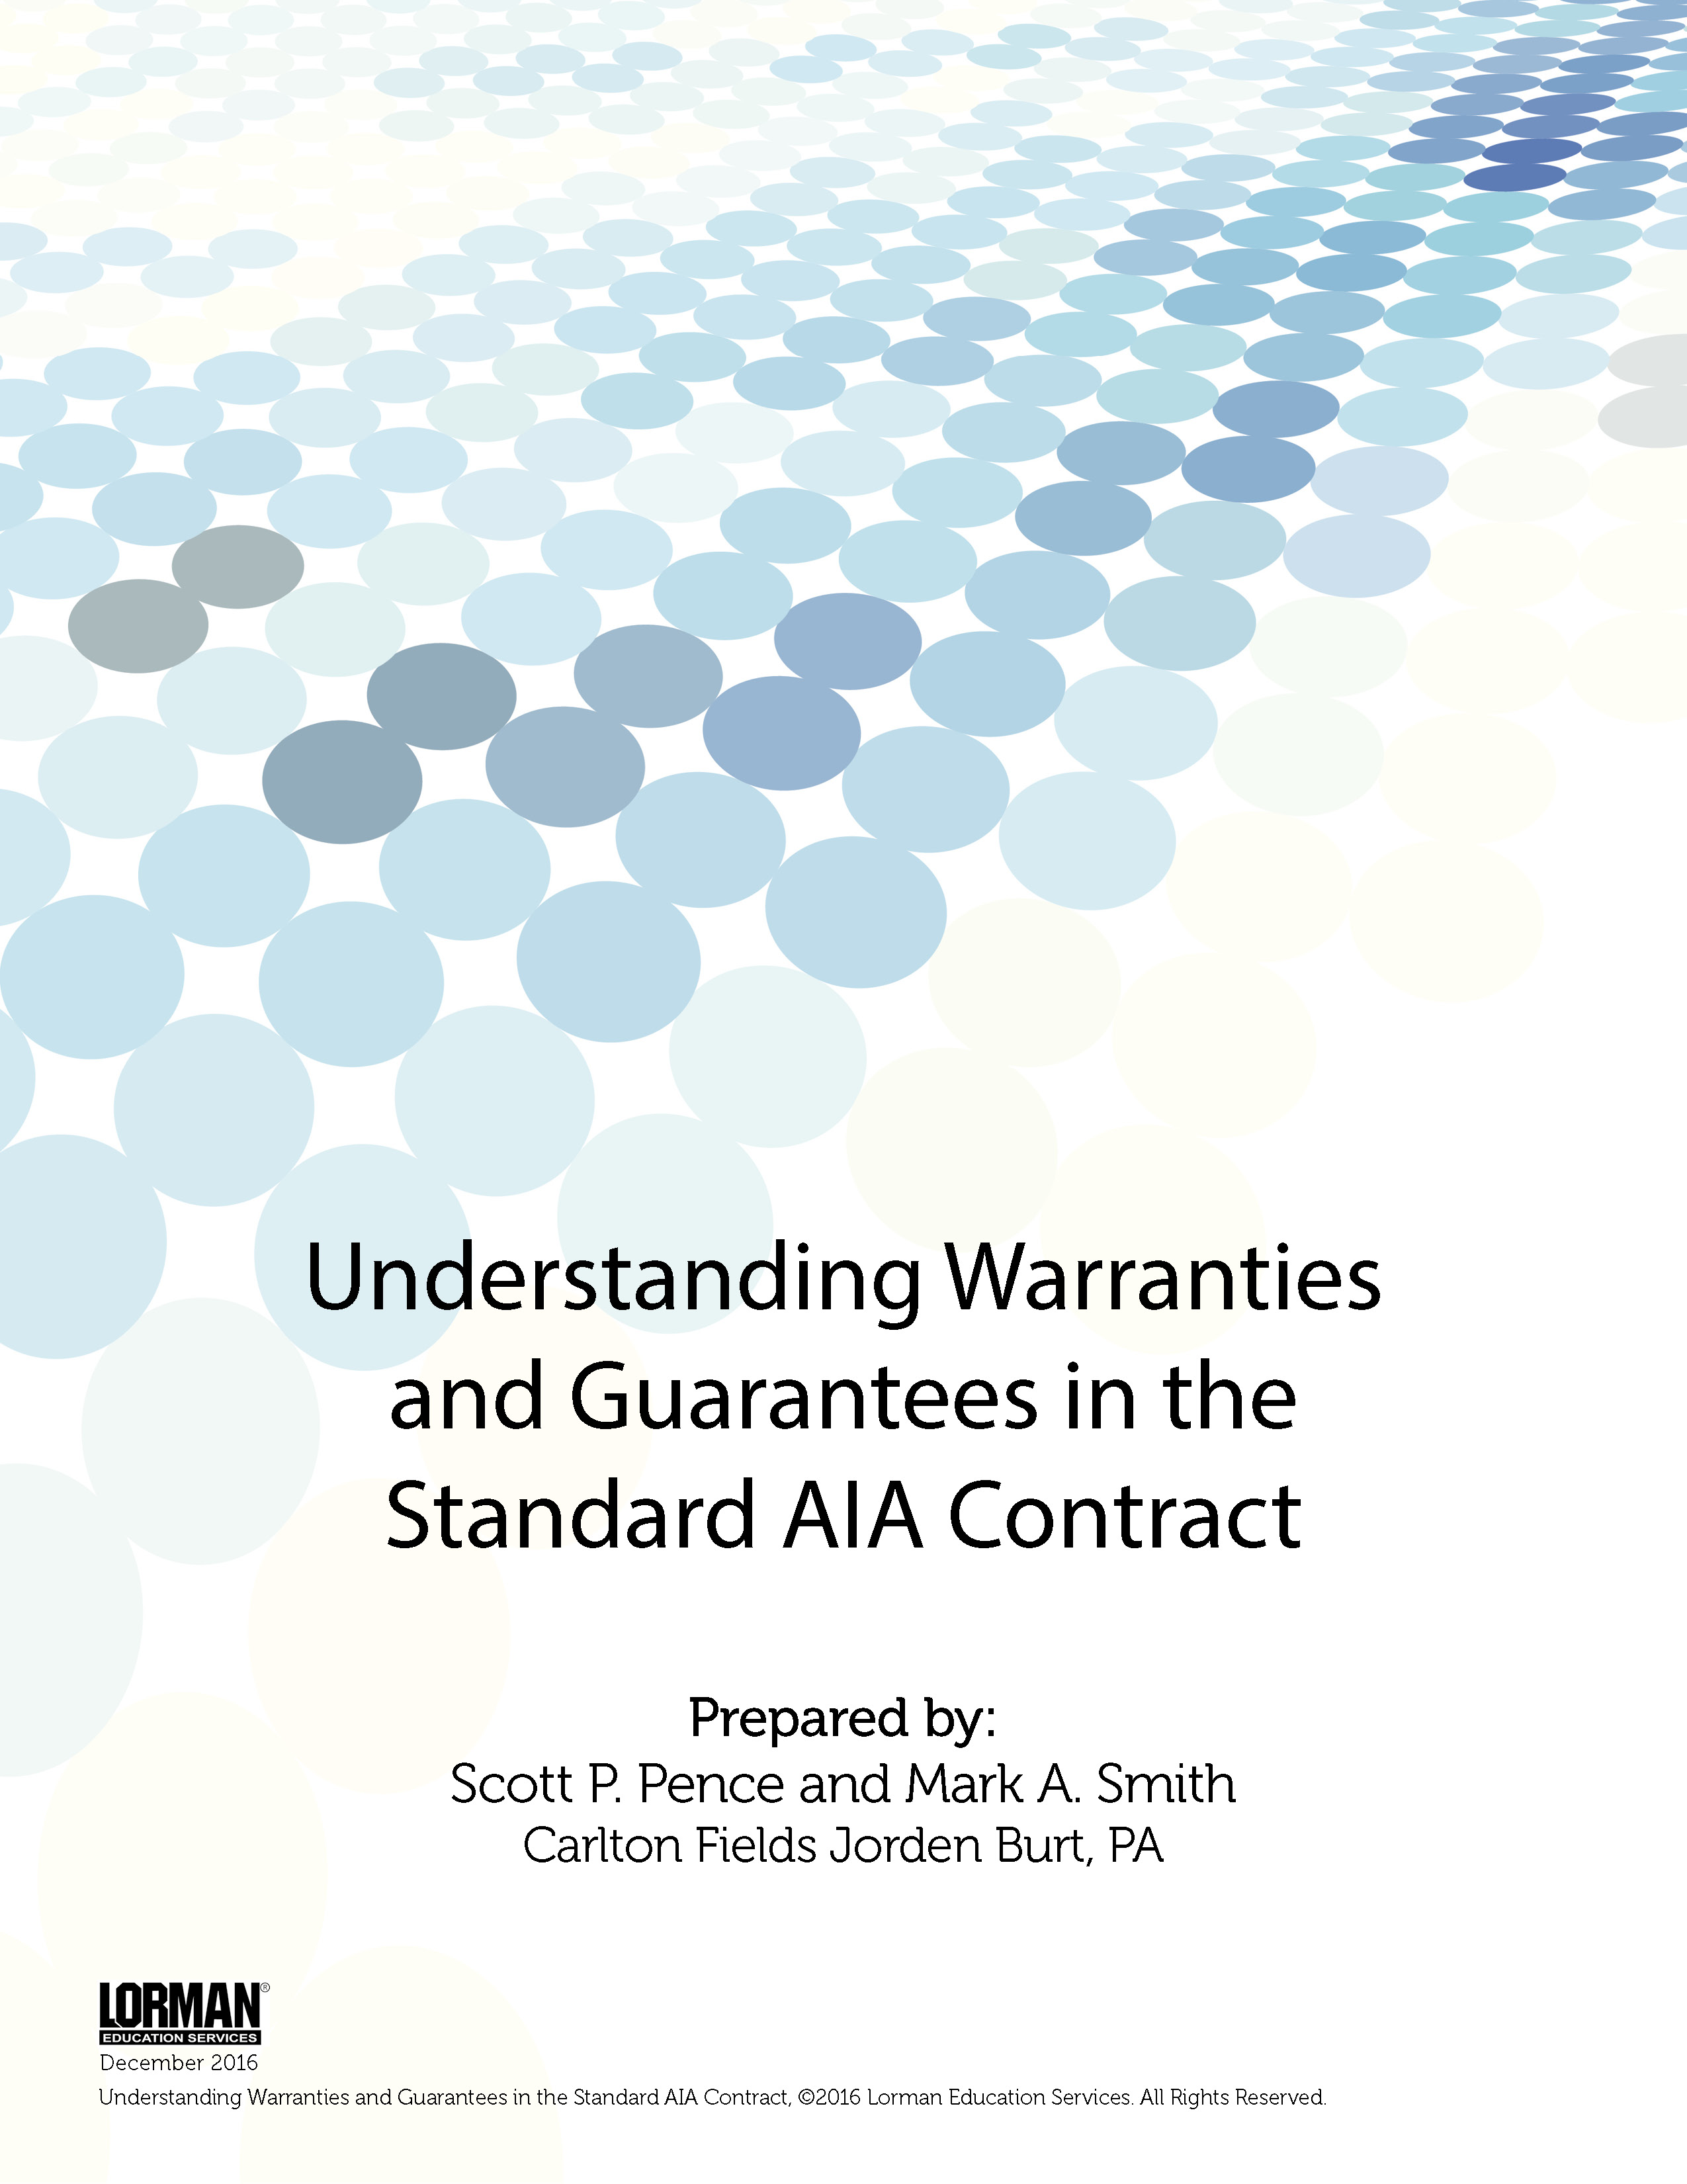 Understanding Warranties and Guarantees in the Standard AIA Contract